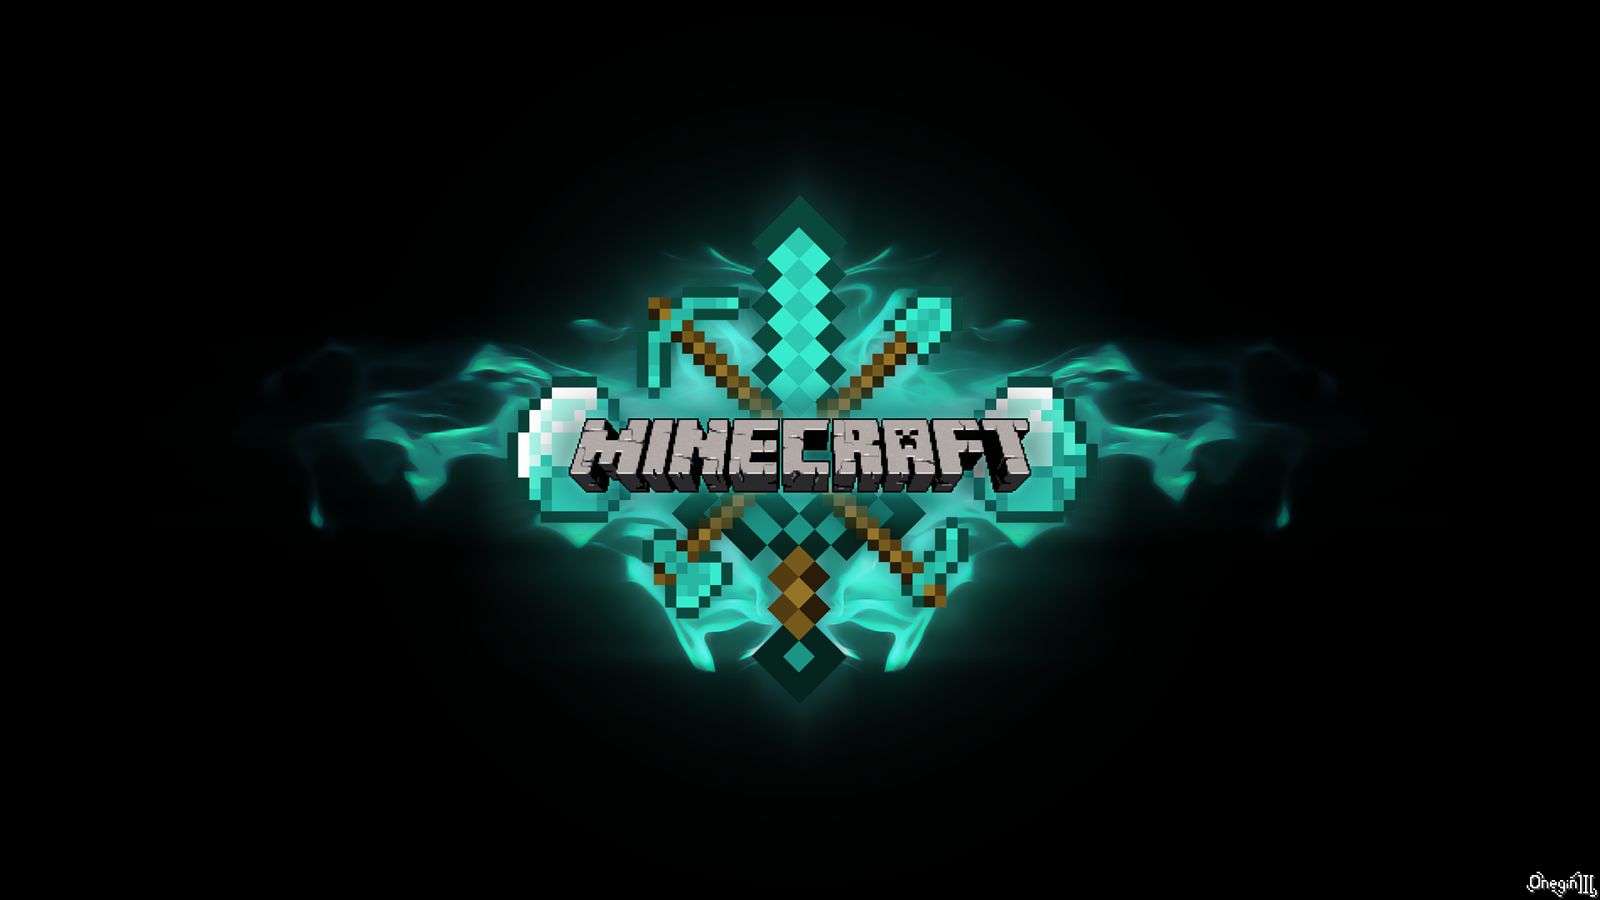 Cool Wallpaper Minecraft Tablet - 255c07c1249ade8daa63e3bb15f54fc0  Collection_314962.png